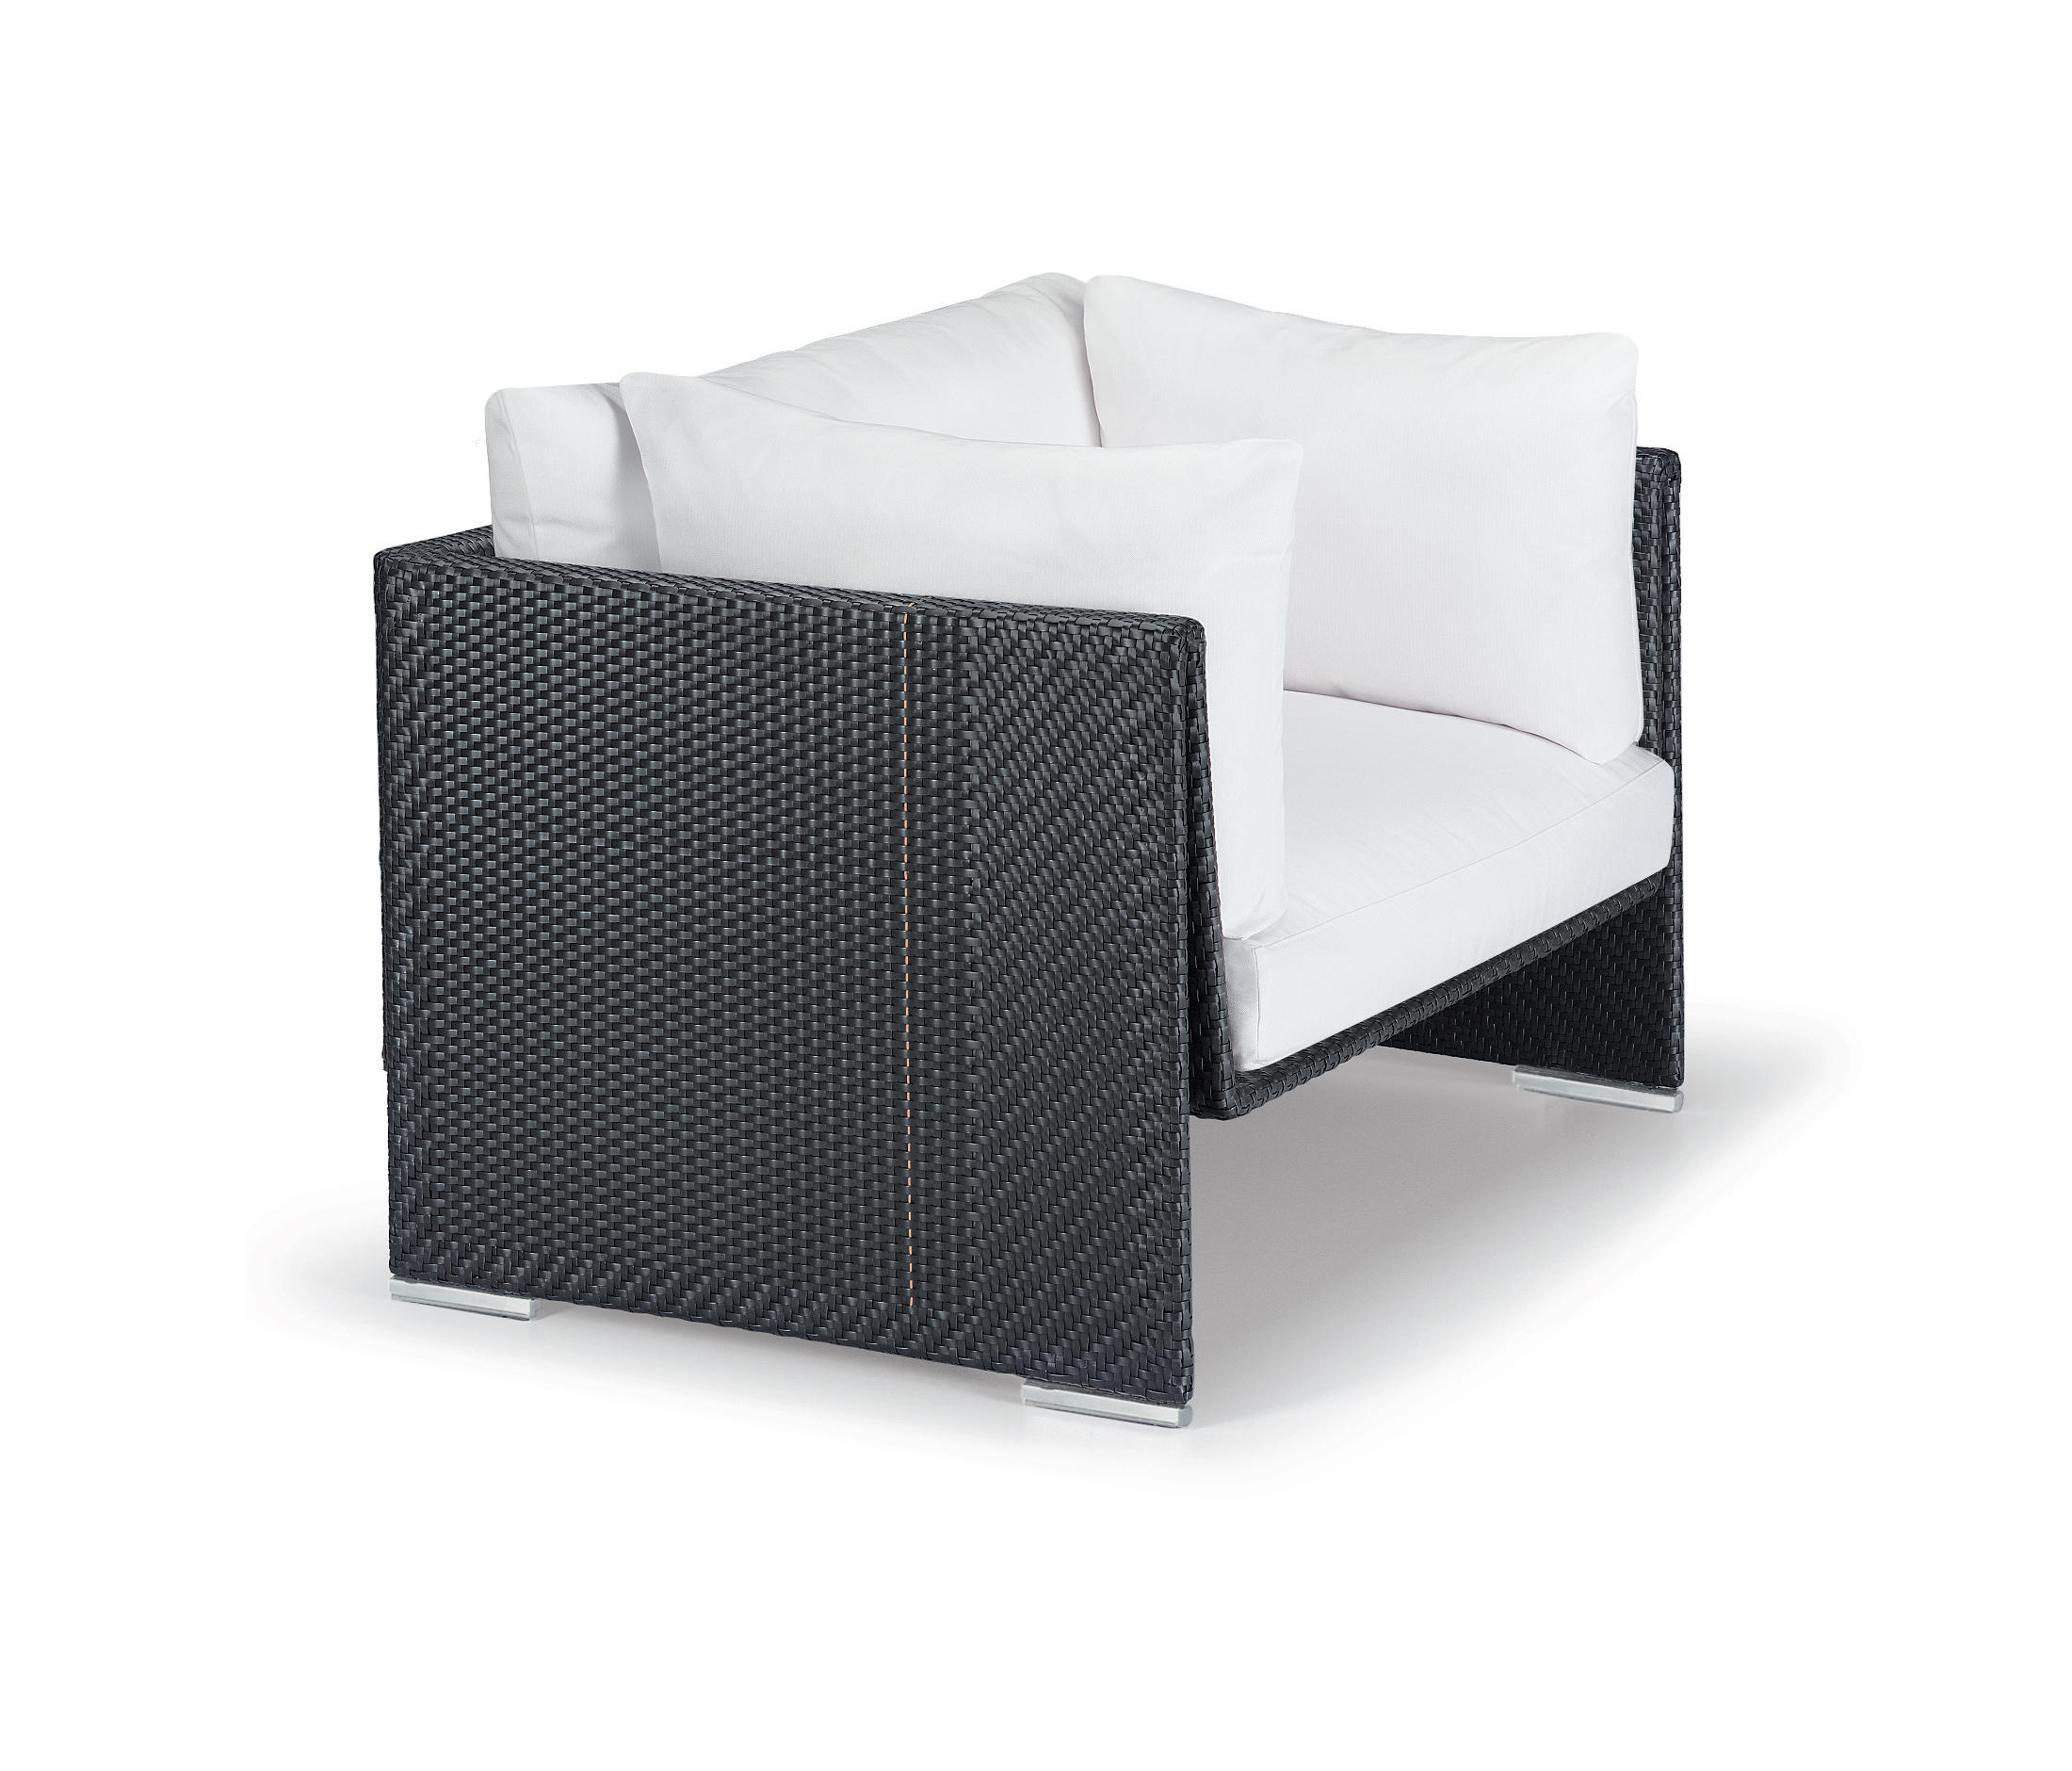 slim line lounge chair - garden armchairs from dedon | architonic, Hause deko